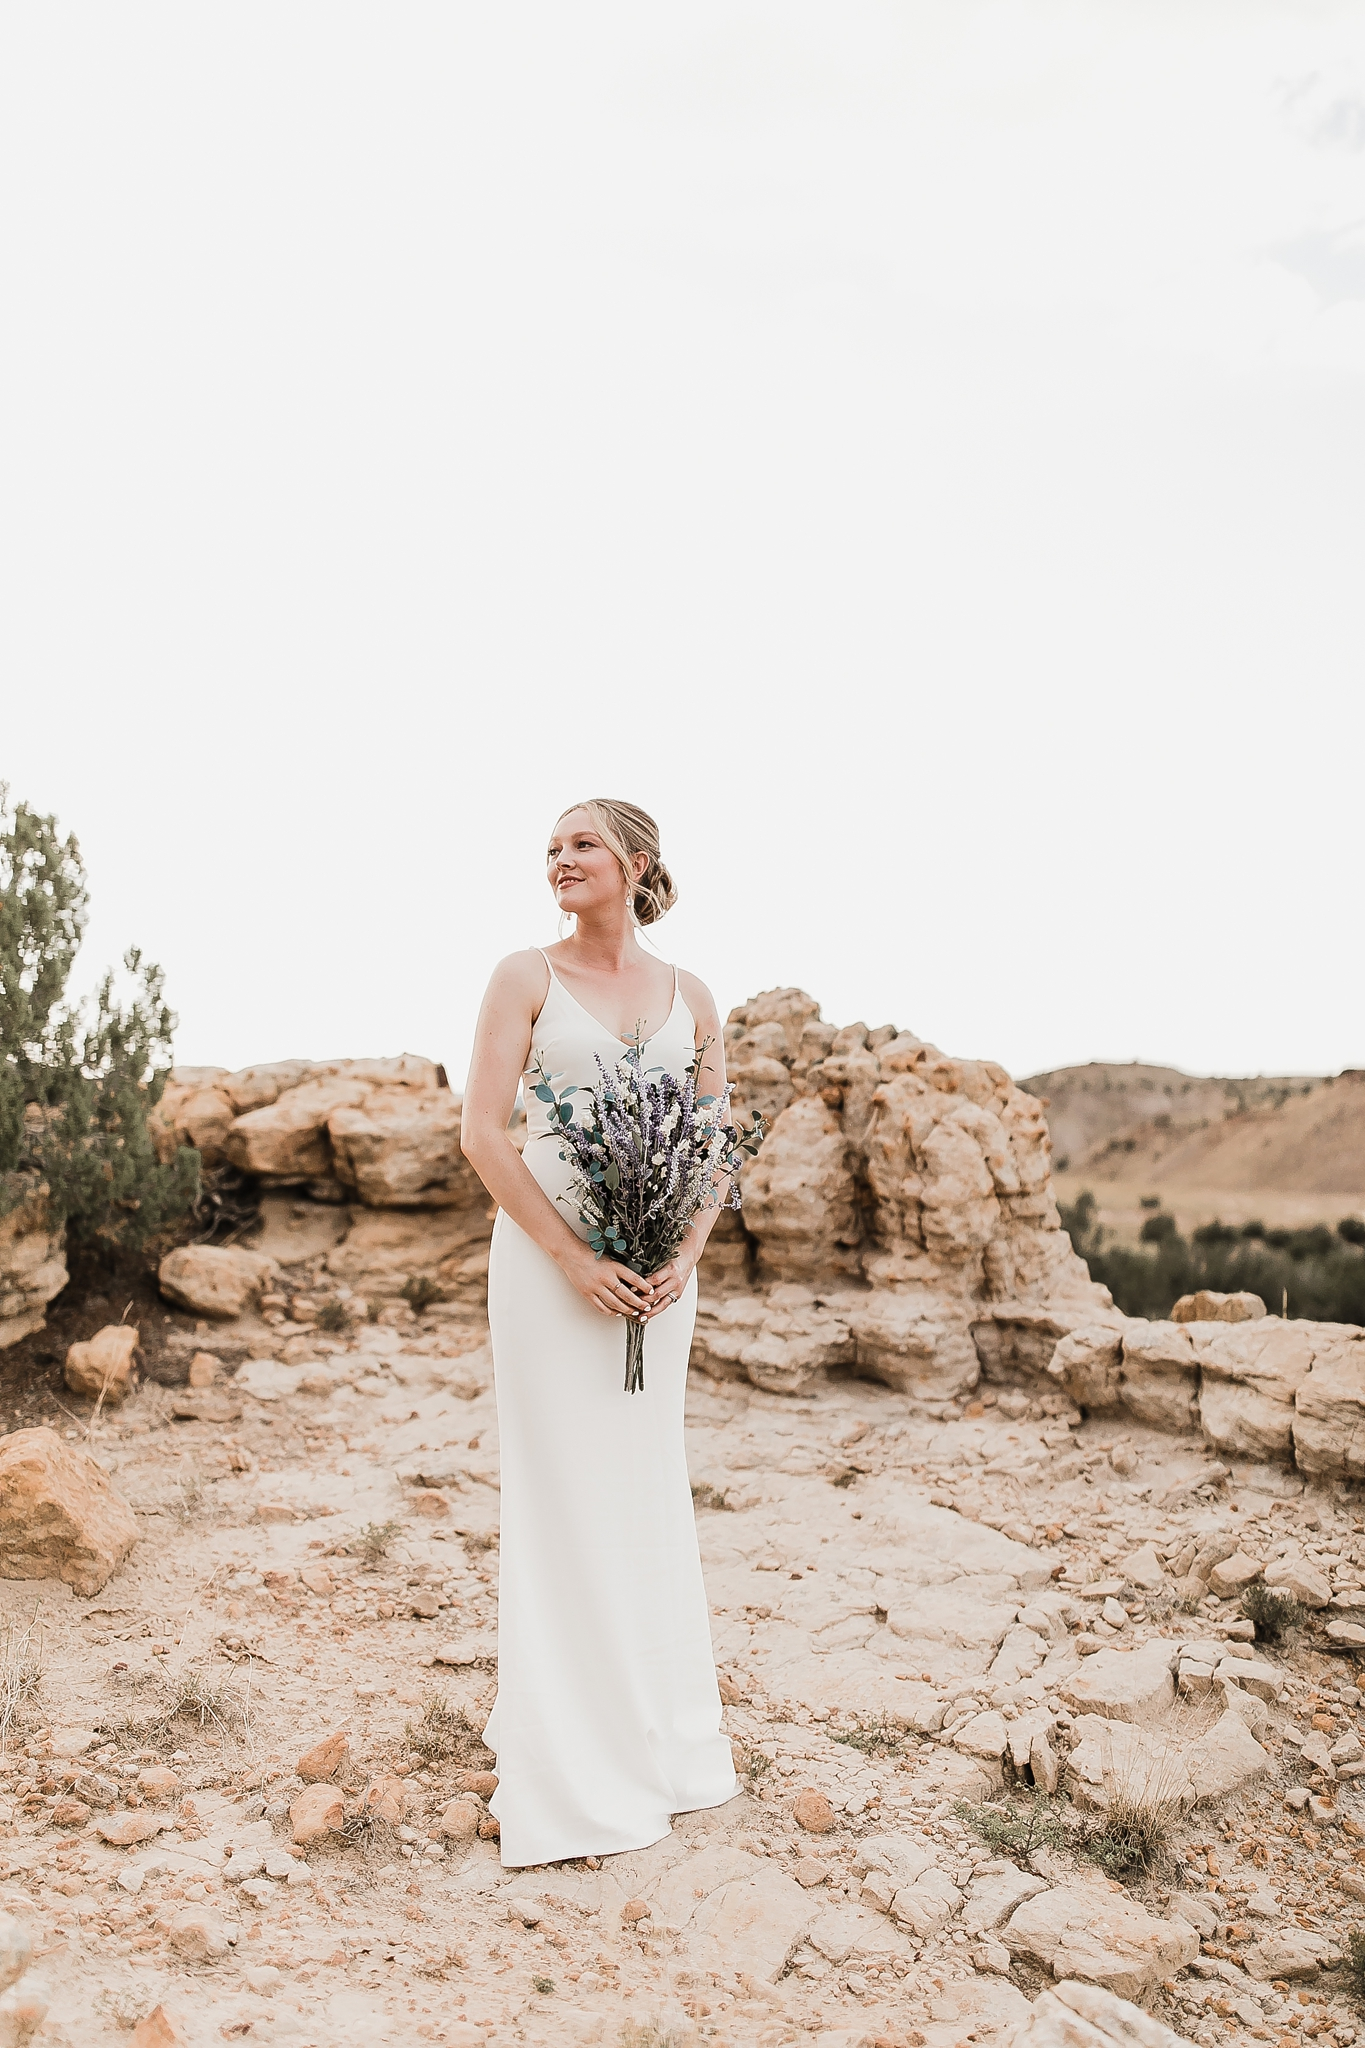 Alicia+lucia+photography+-+albuquerque+wedding+photographer+-+santa+fe+wedding+photography+-+new+mexico+wedding+photographer+-+new+mexico+wedding+-+new+mexico+elopement+-+elopment+-+mountain+elopement_0012.jpg